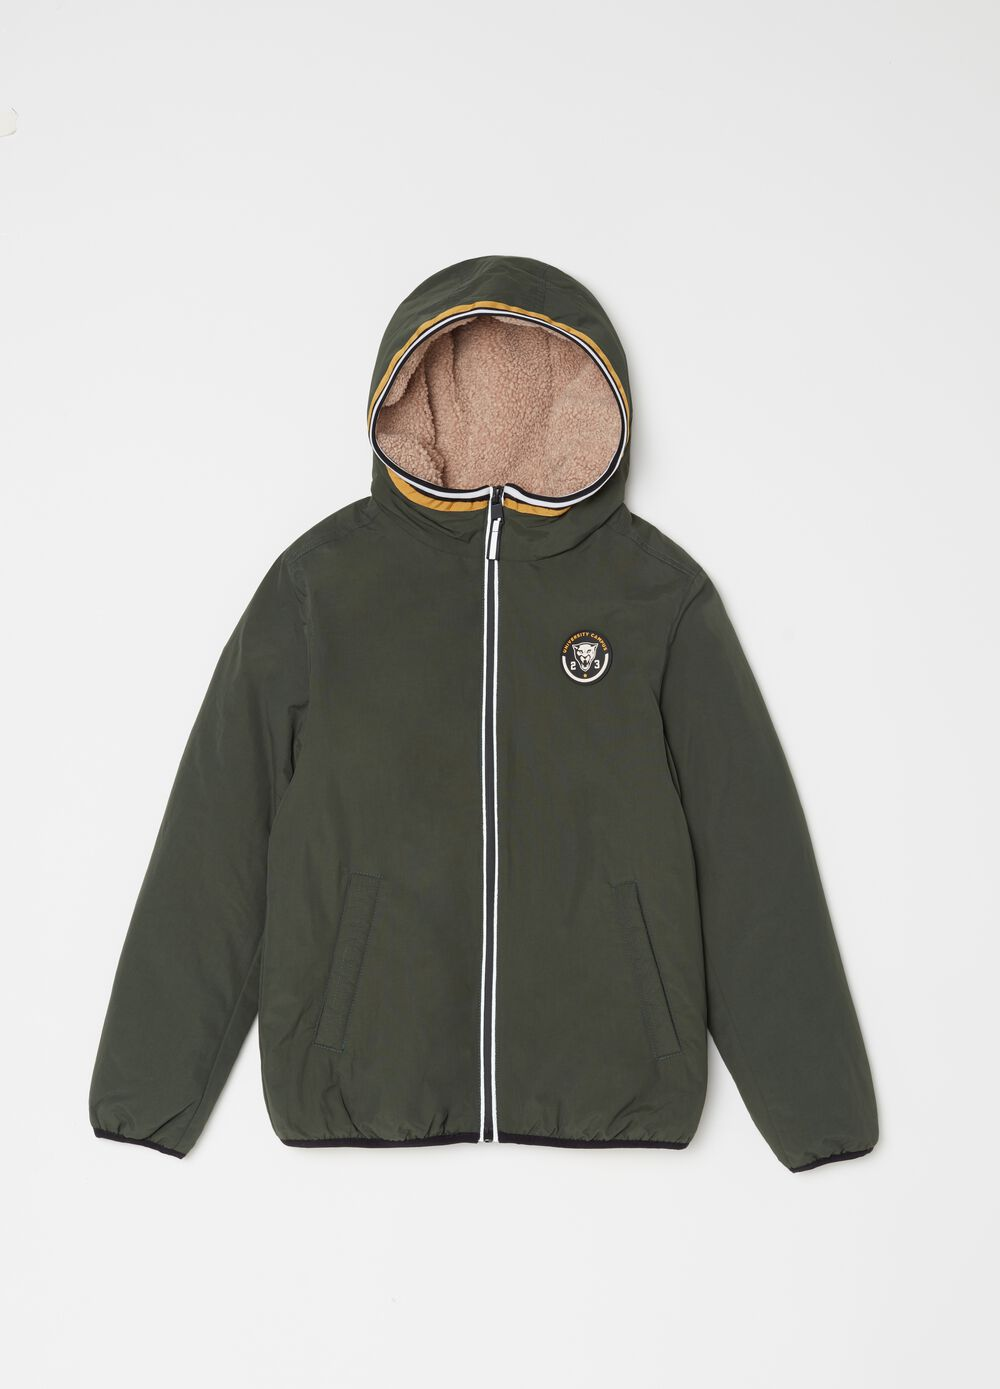 Windbreaker with patch and rubber zip